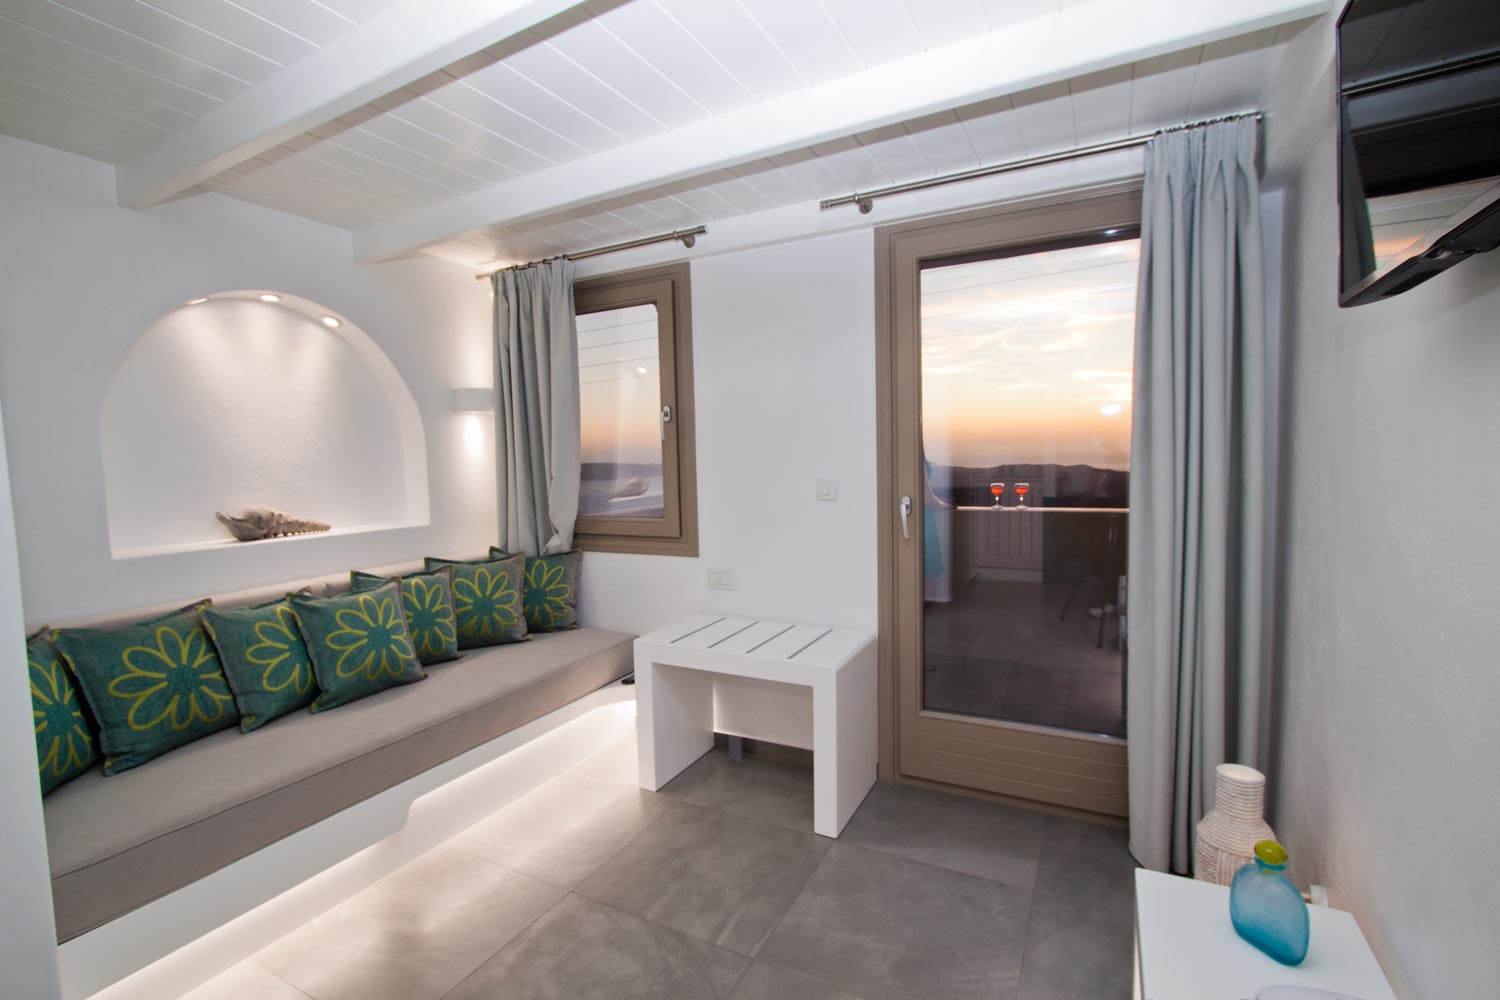 nemesis-accommodation-santorini-island-greece-studio-room12